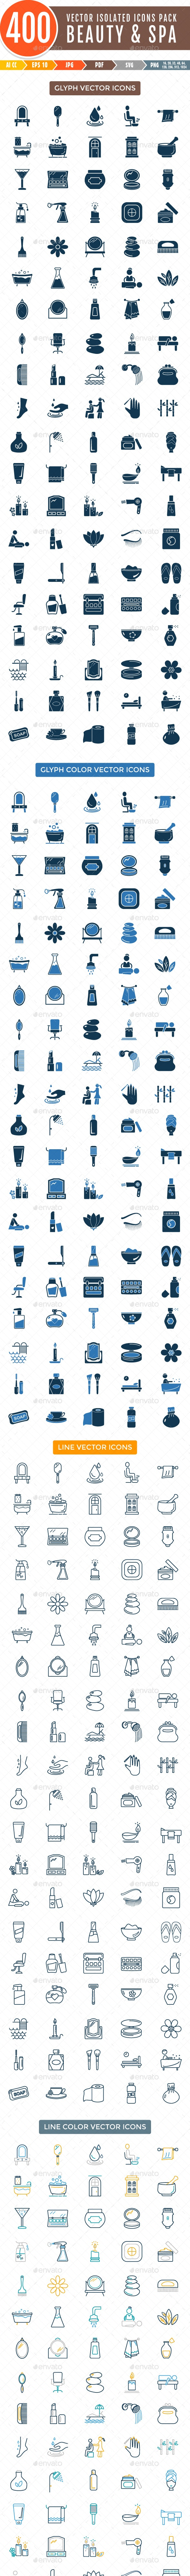 400 Beauty and Spa Vector Isolated Icons - Icons